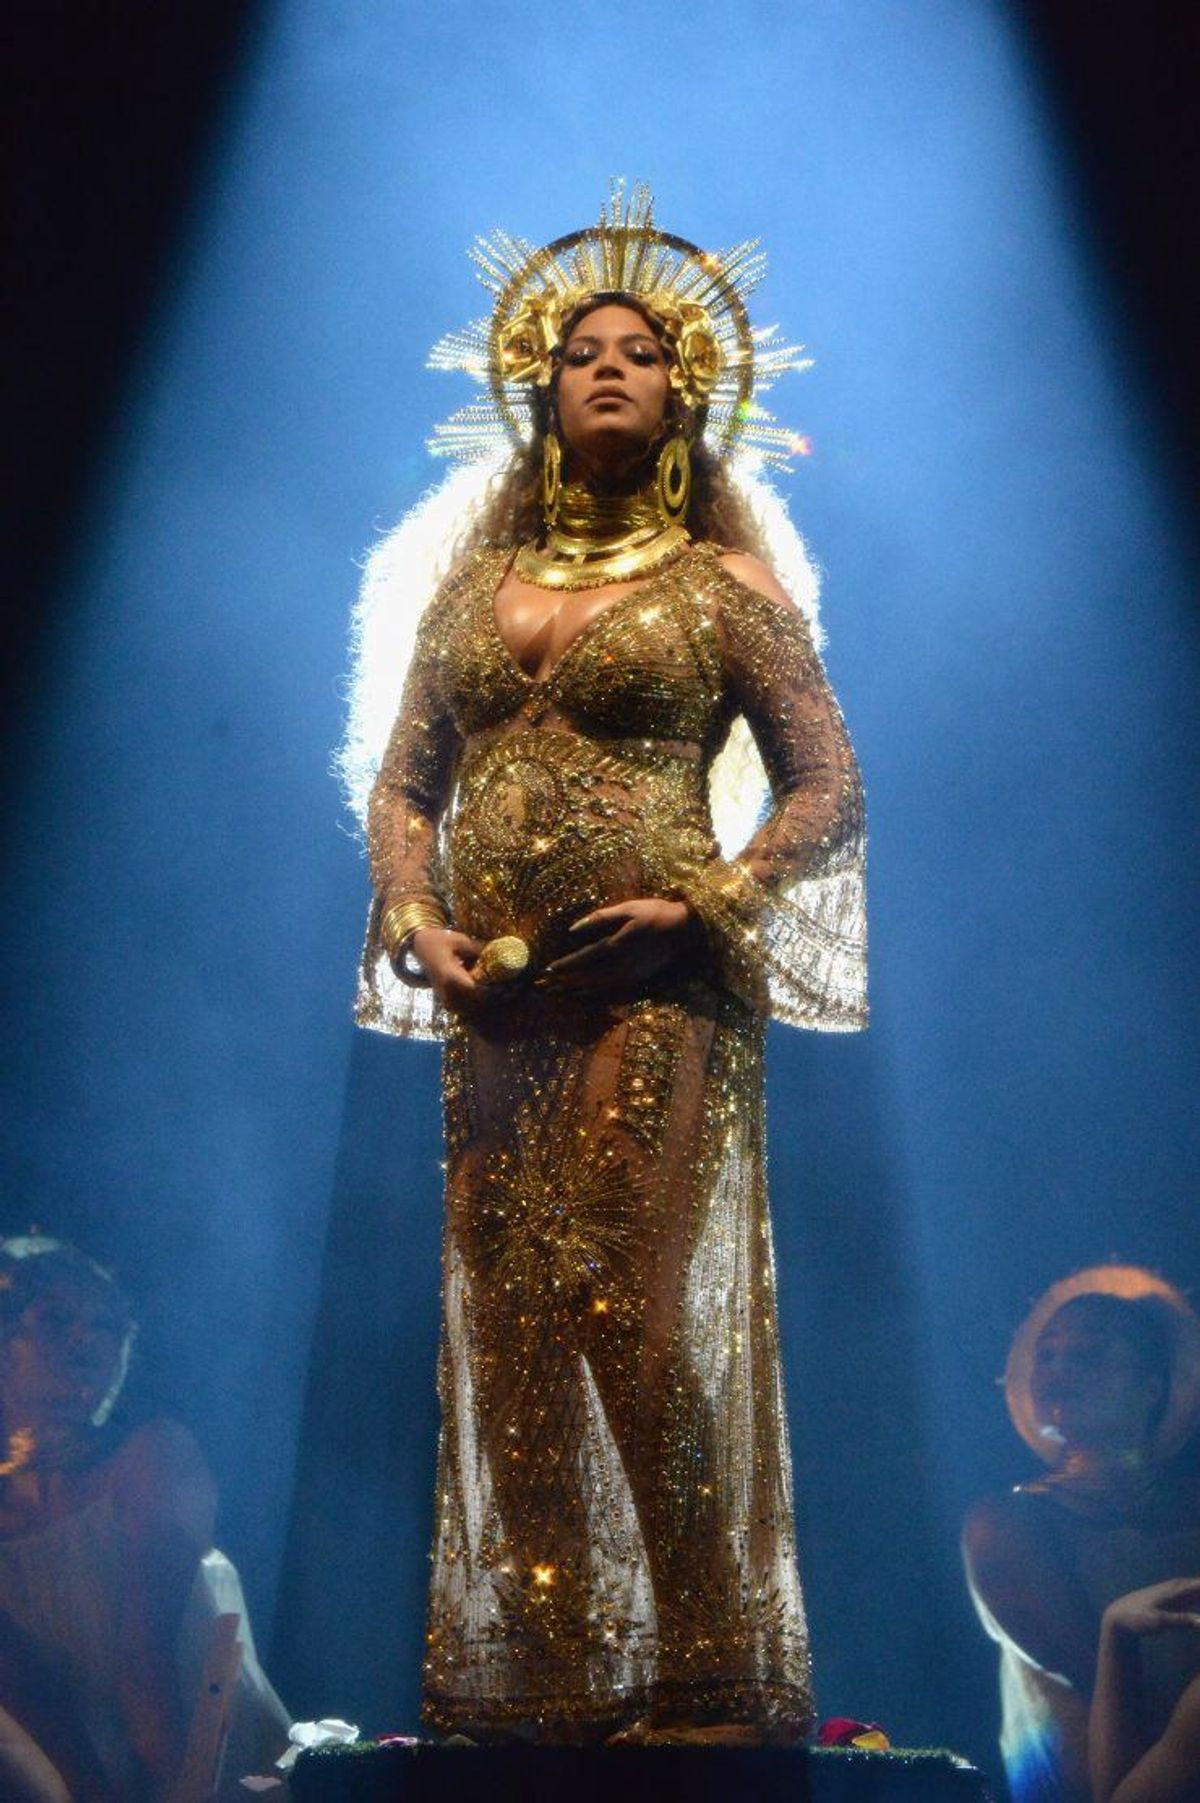 10 MOST ICONIC MOMENTS OF 59th GRAMMYs